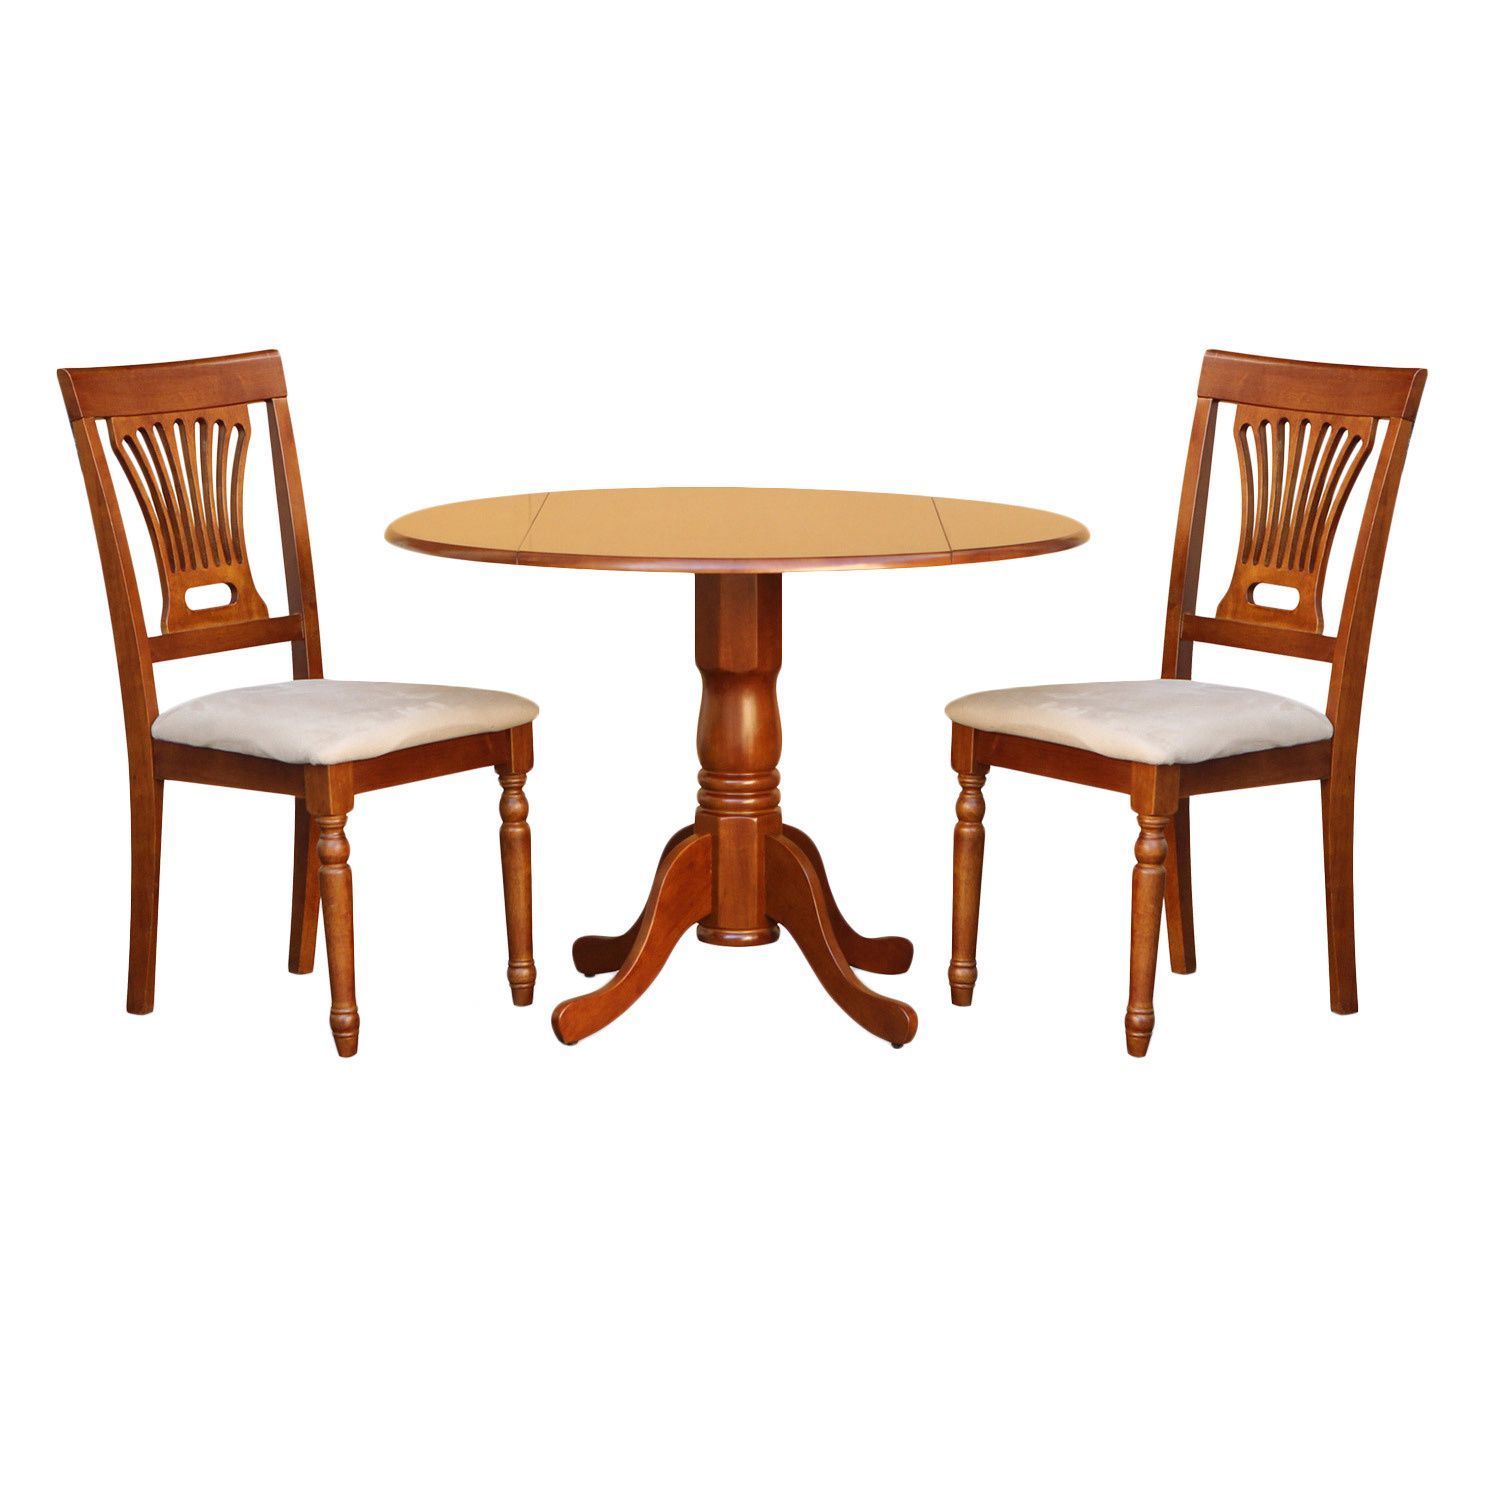 Saddle Brown Small Kitchen Table and 2 Chairs 3-piece Dining Set ...